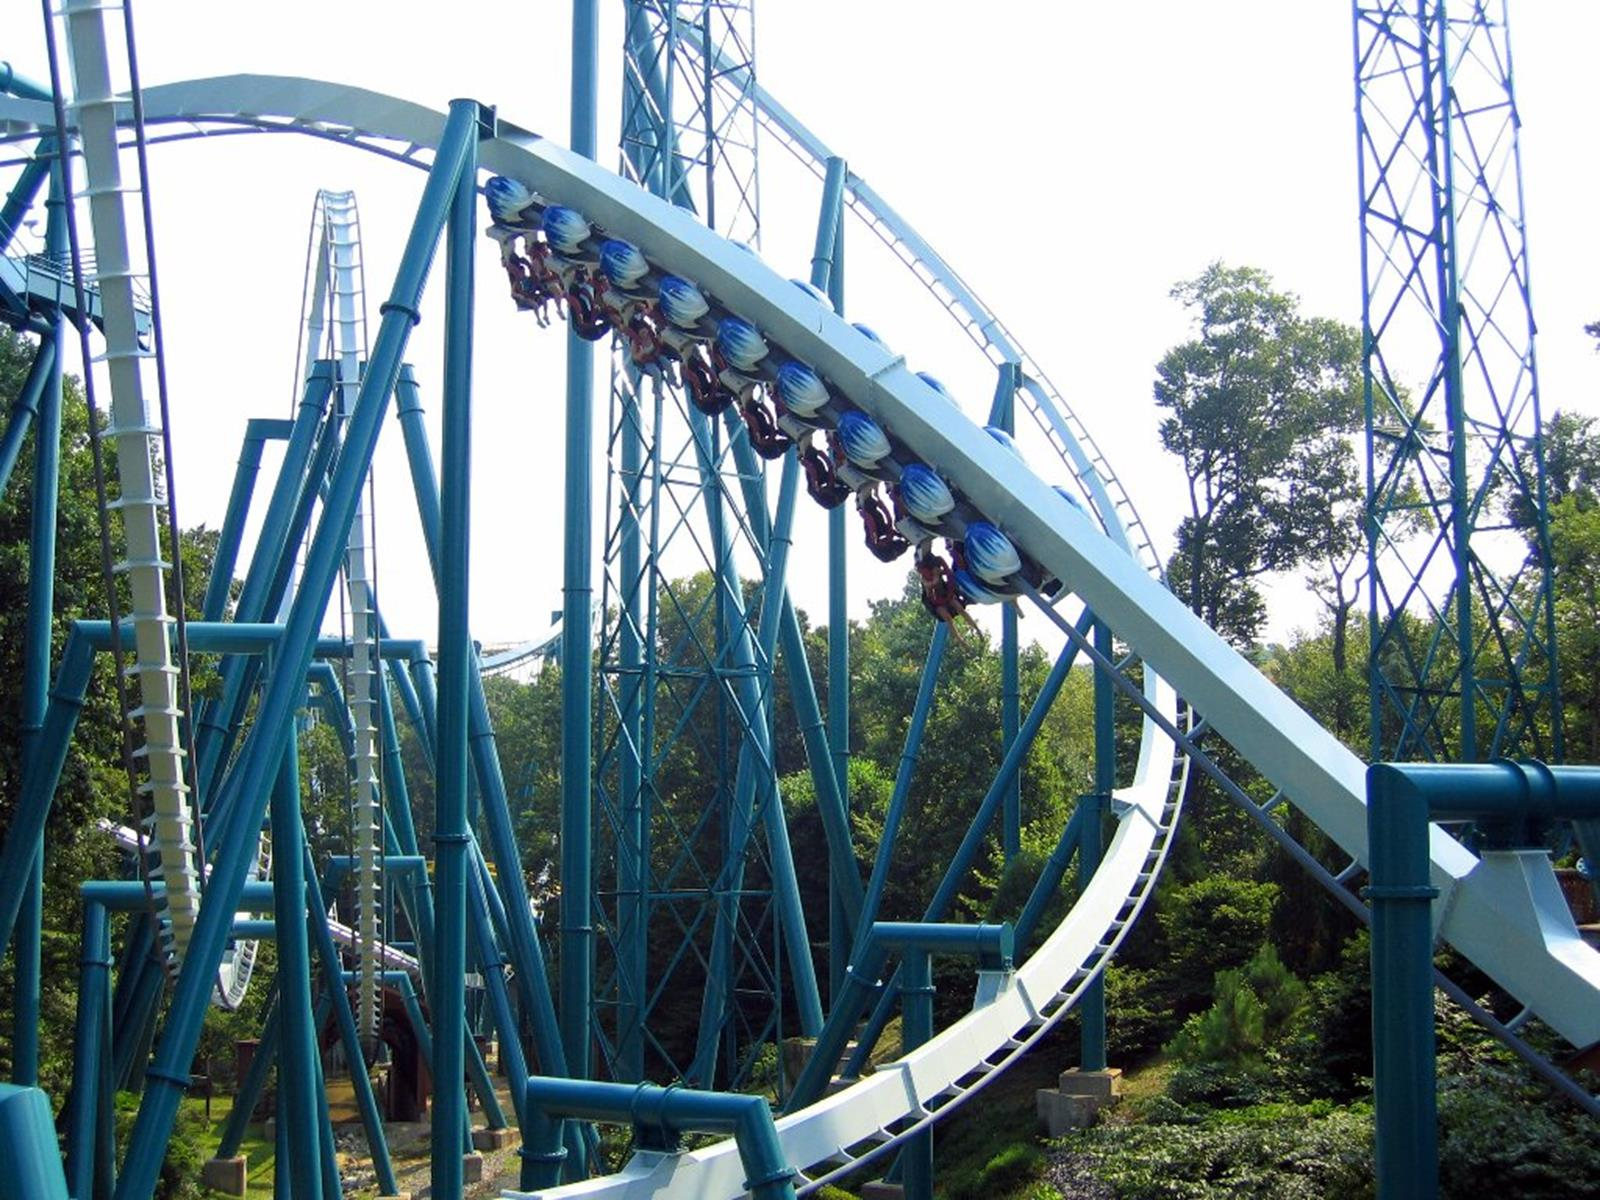 Alpengiest at Busch Gardens in Williamsburg. Credit: Douglas Whitaker at en.wikipedia